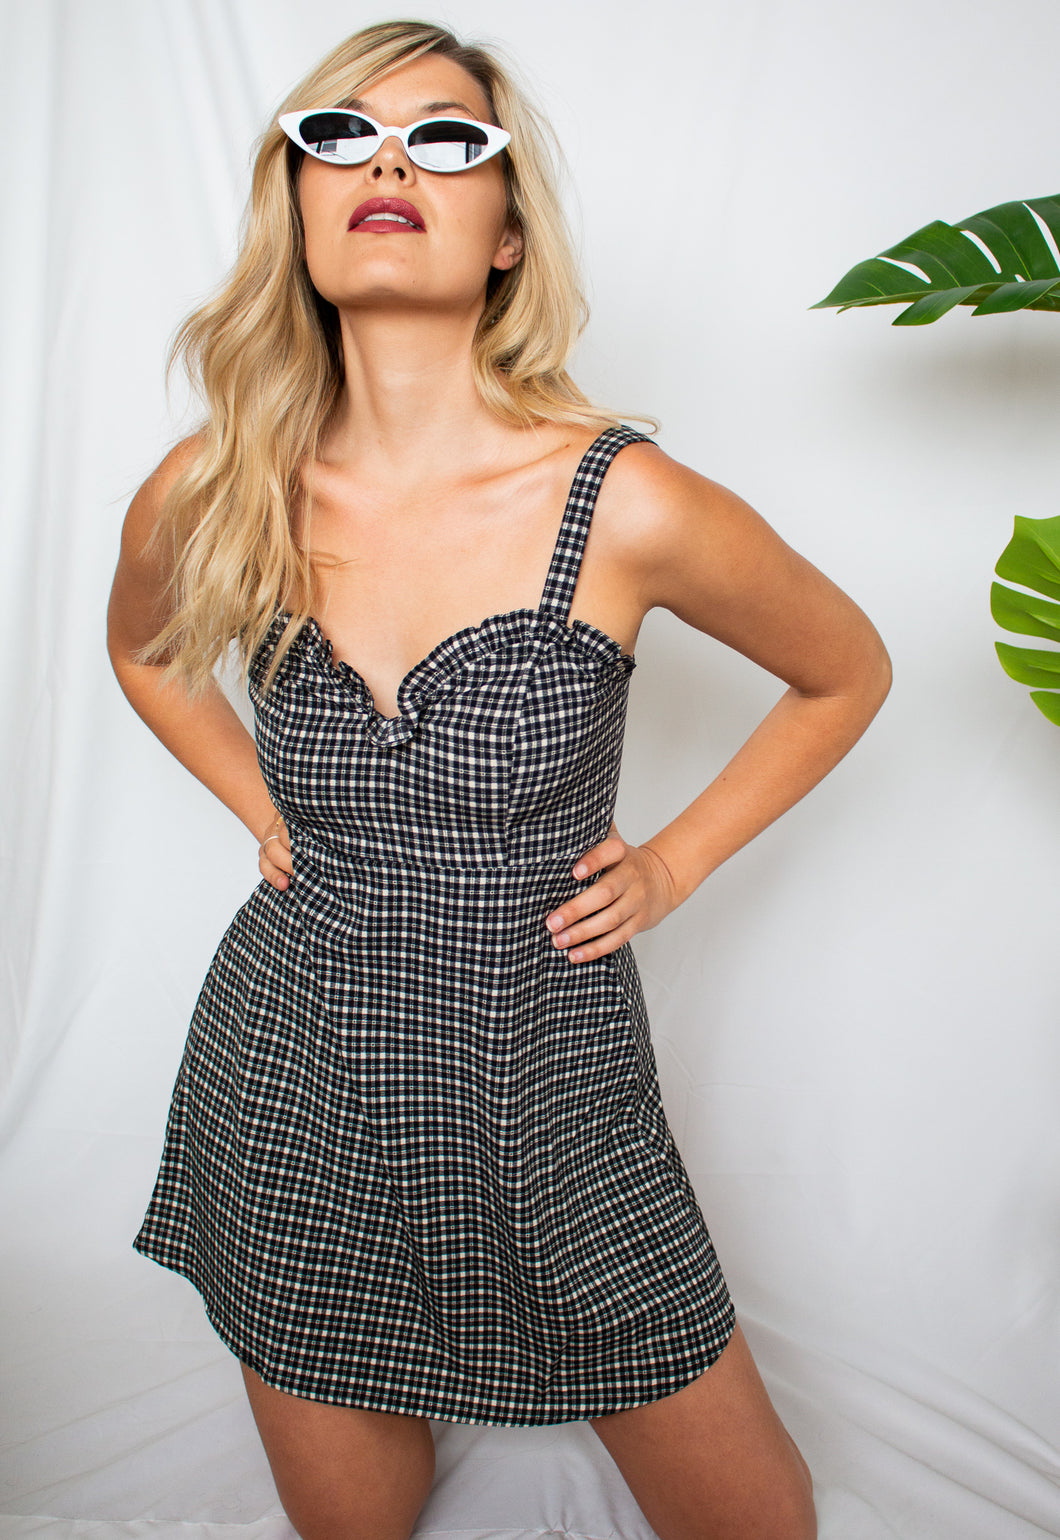 London Calling Plaid Dress - Finding July